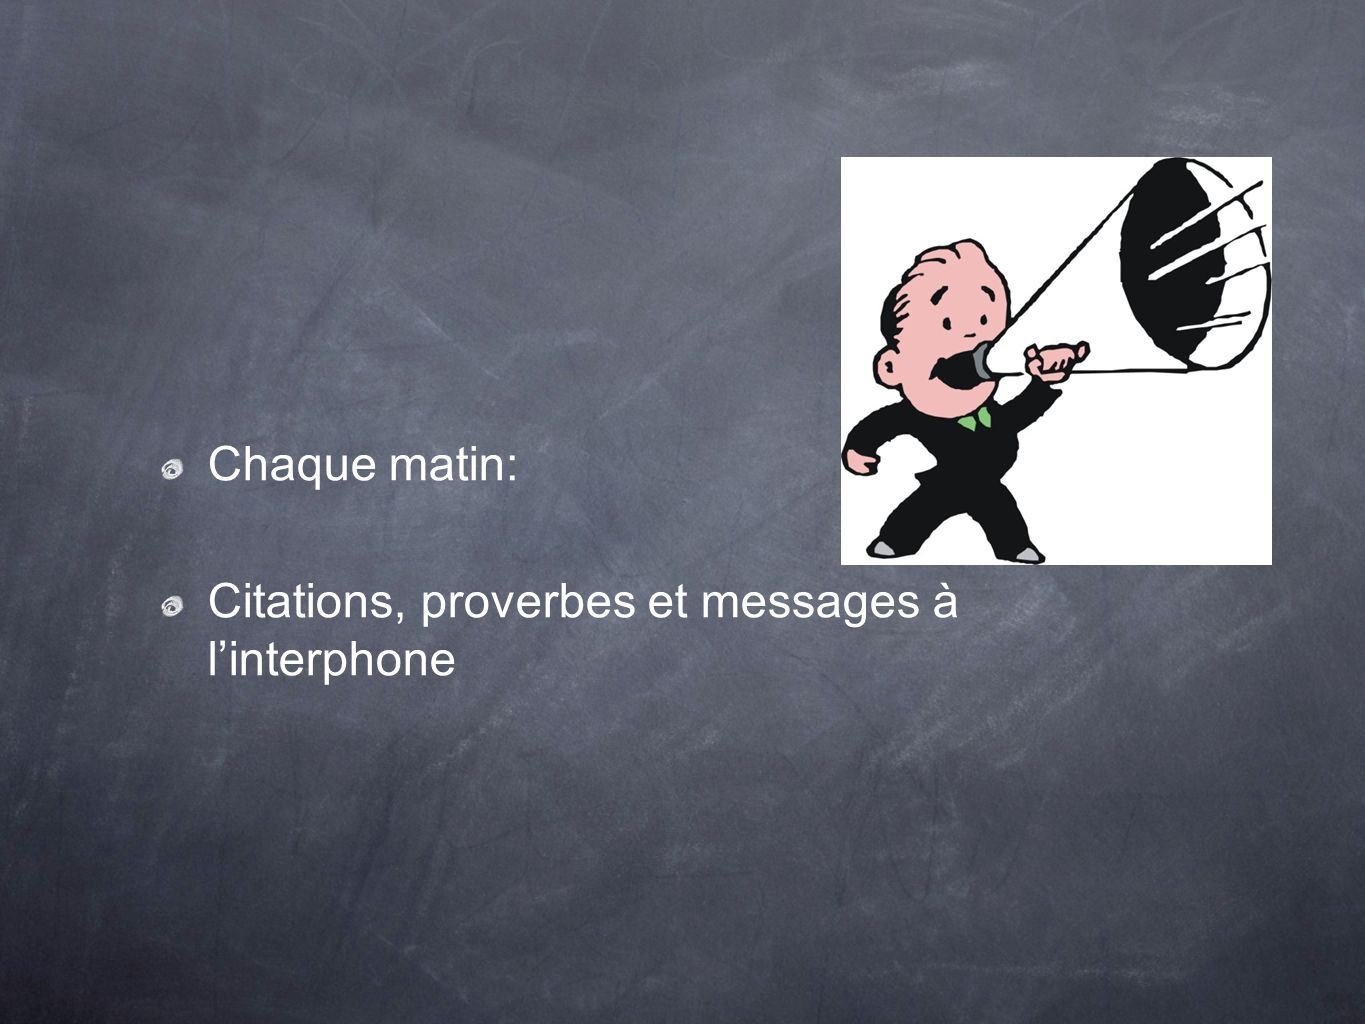 Chaque matin: Citations, proverbes et messages à linterphone